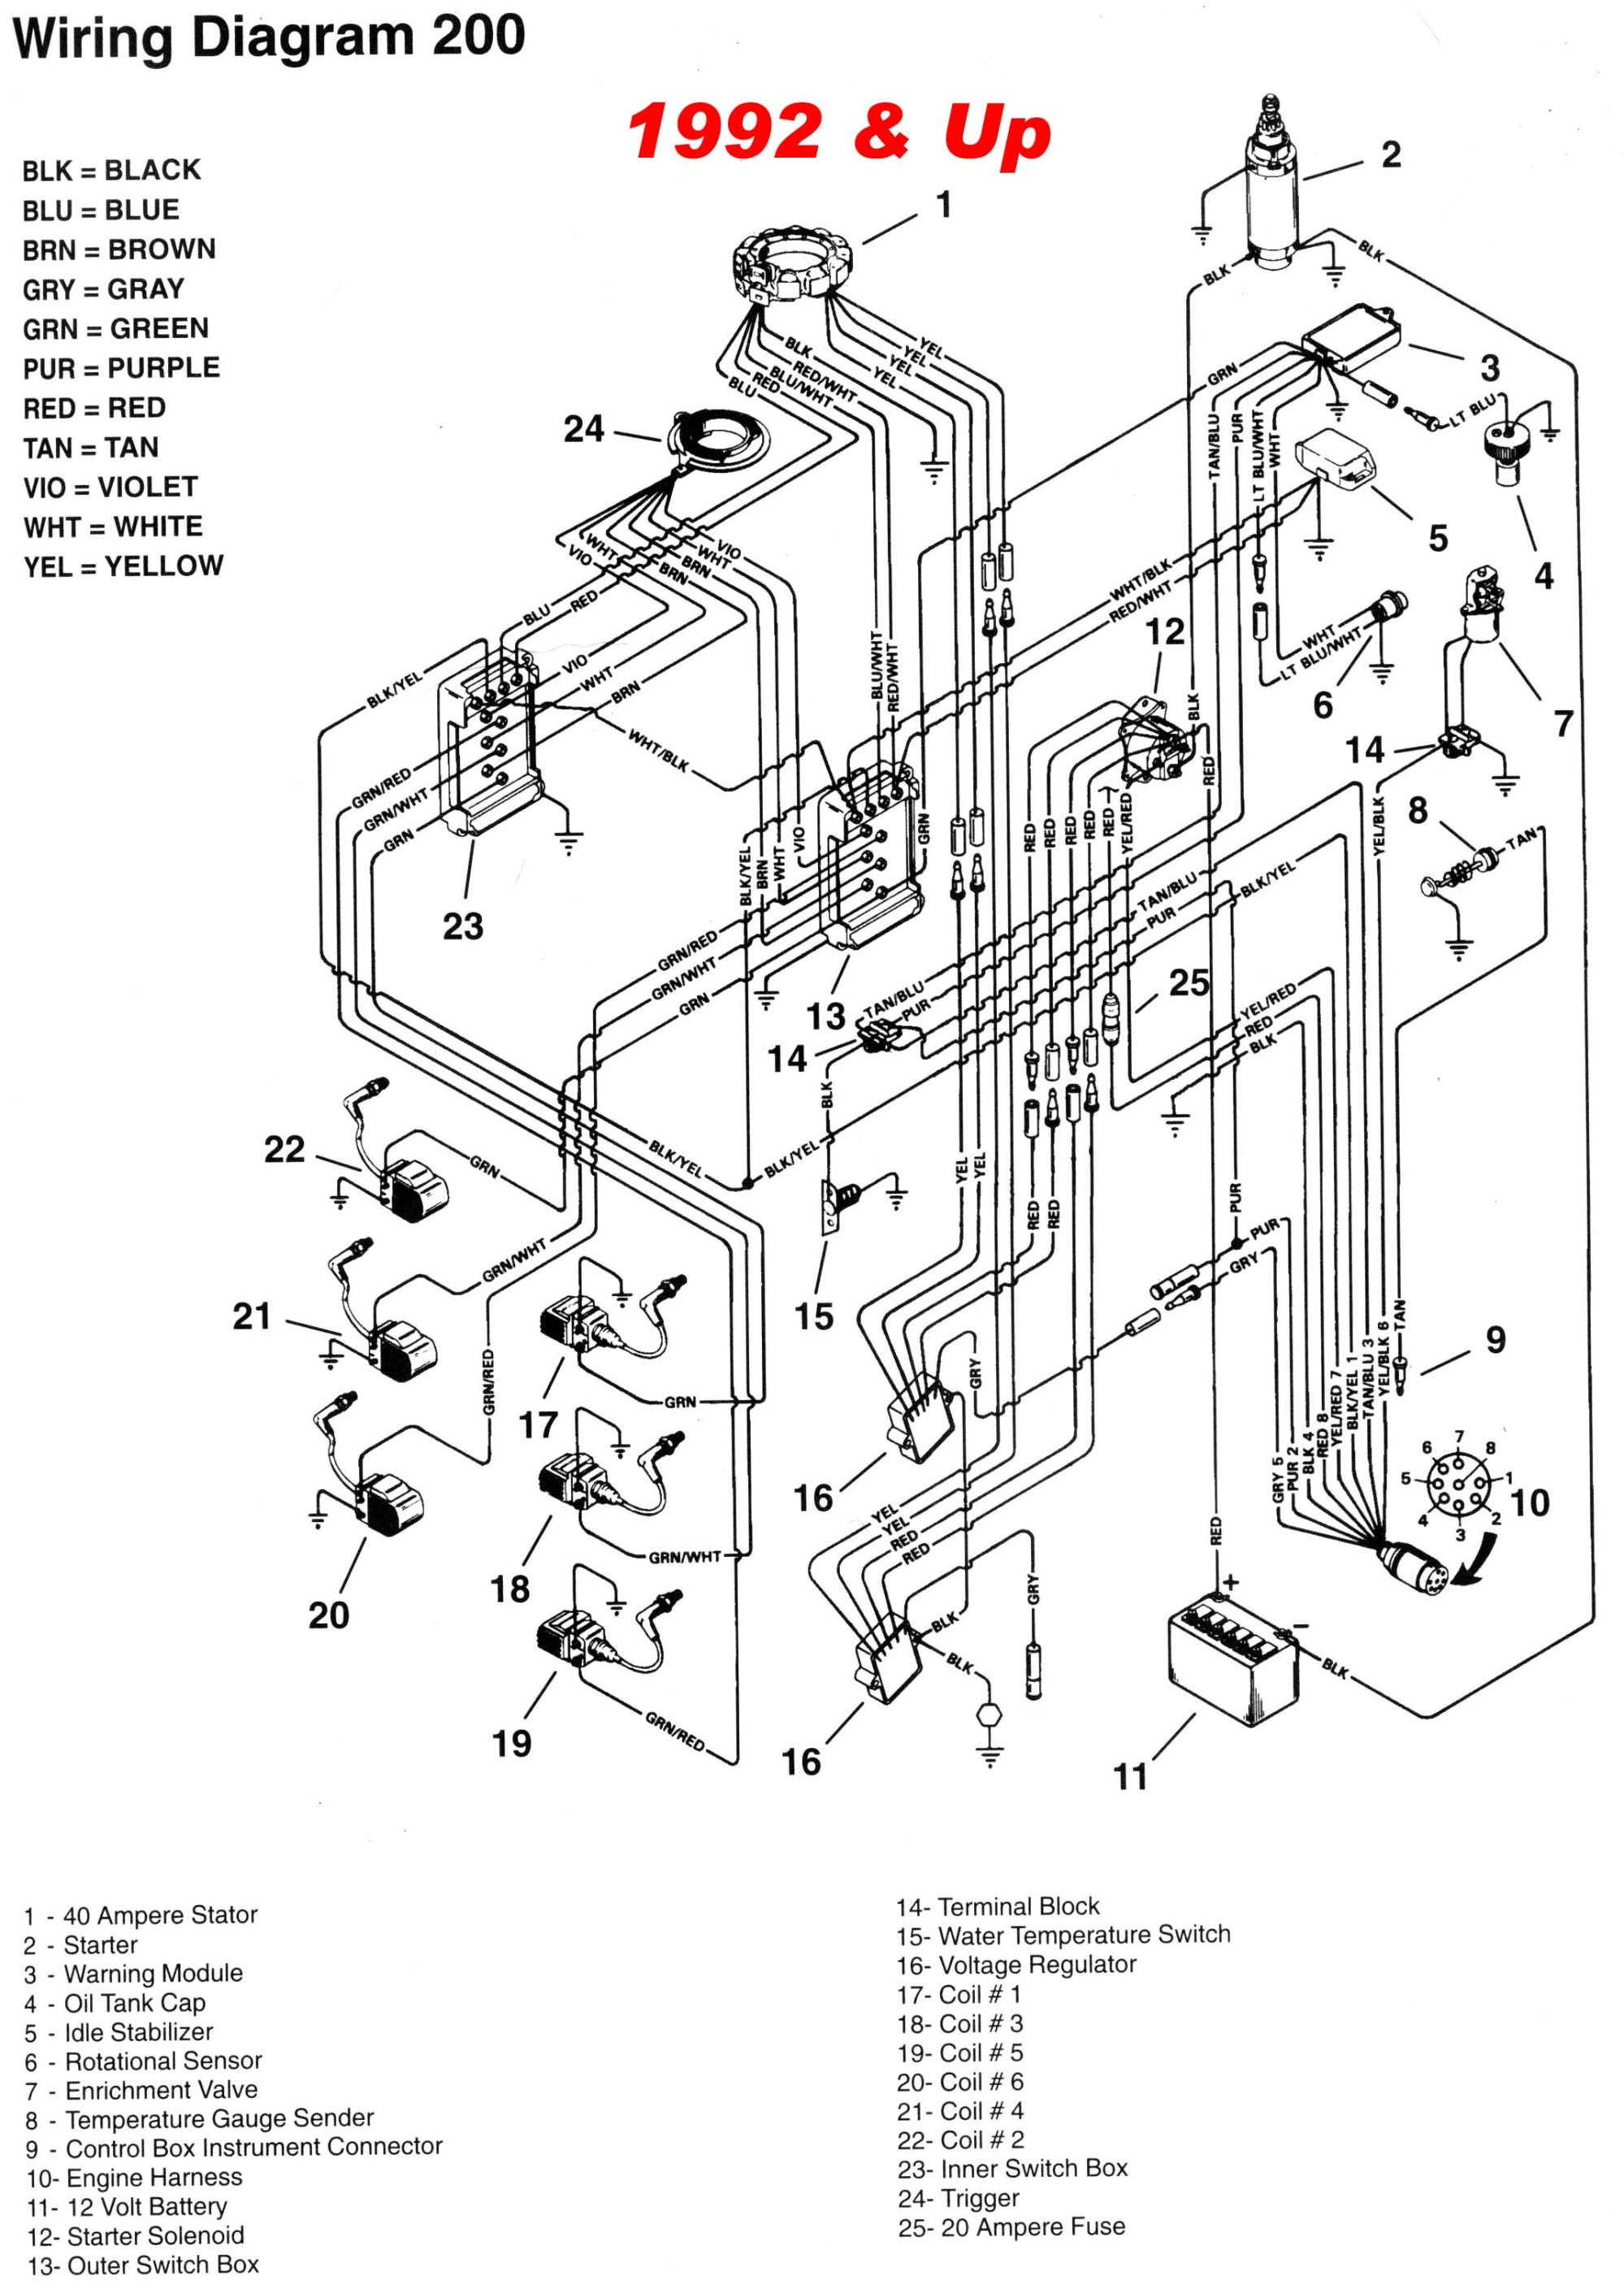 hight resolution of electrical system wiring diagram for 92up fishing motor